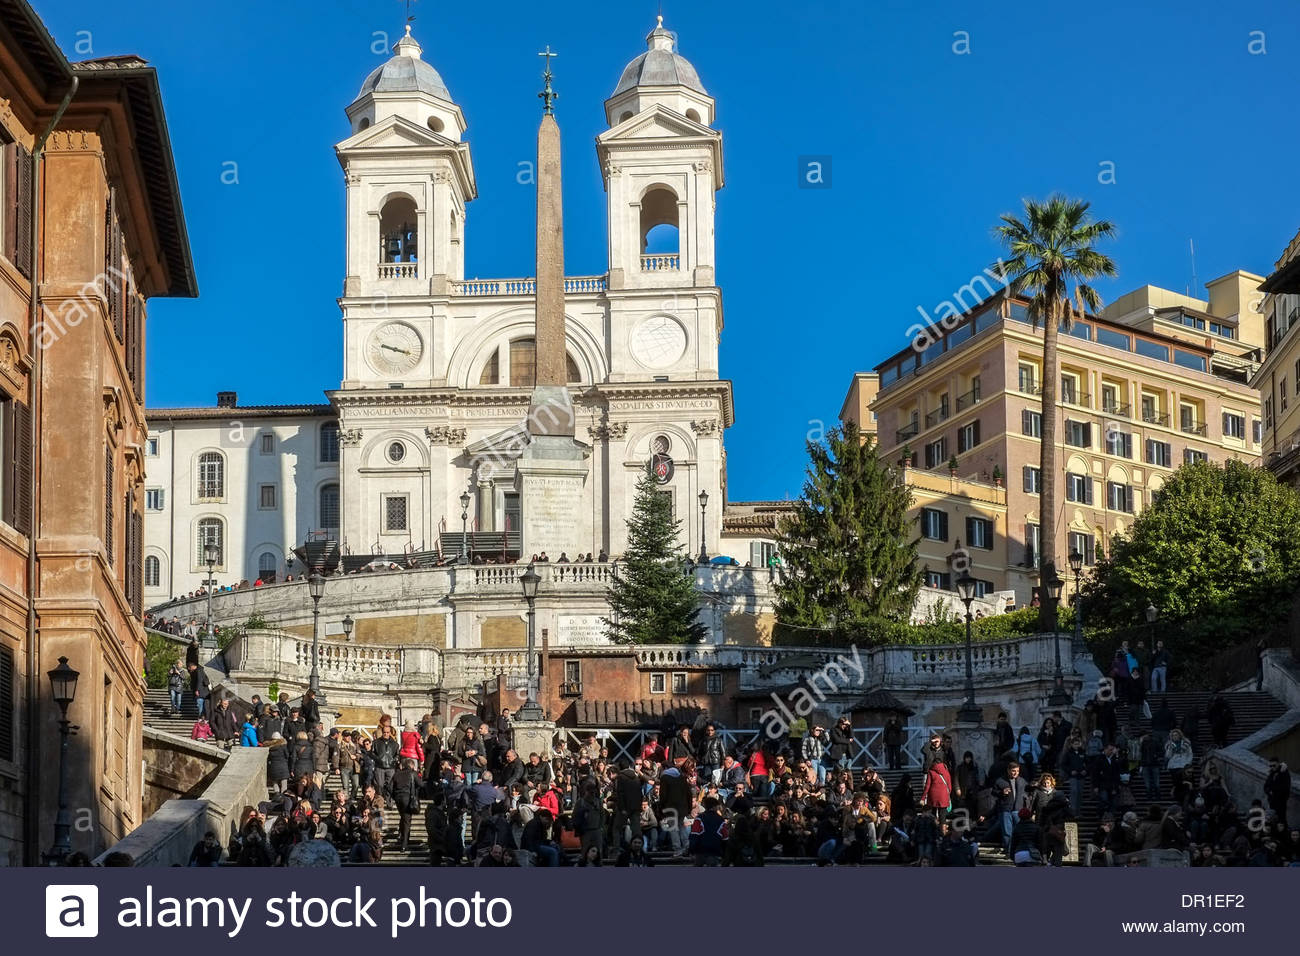 Spanish Steps Stairs in Rome Italy - Stock Image